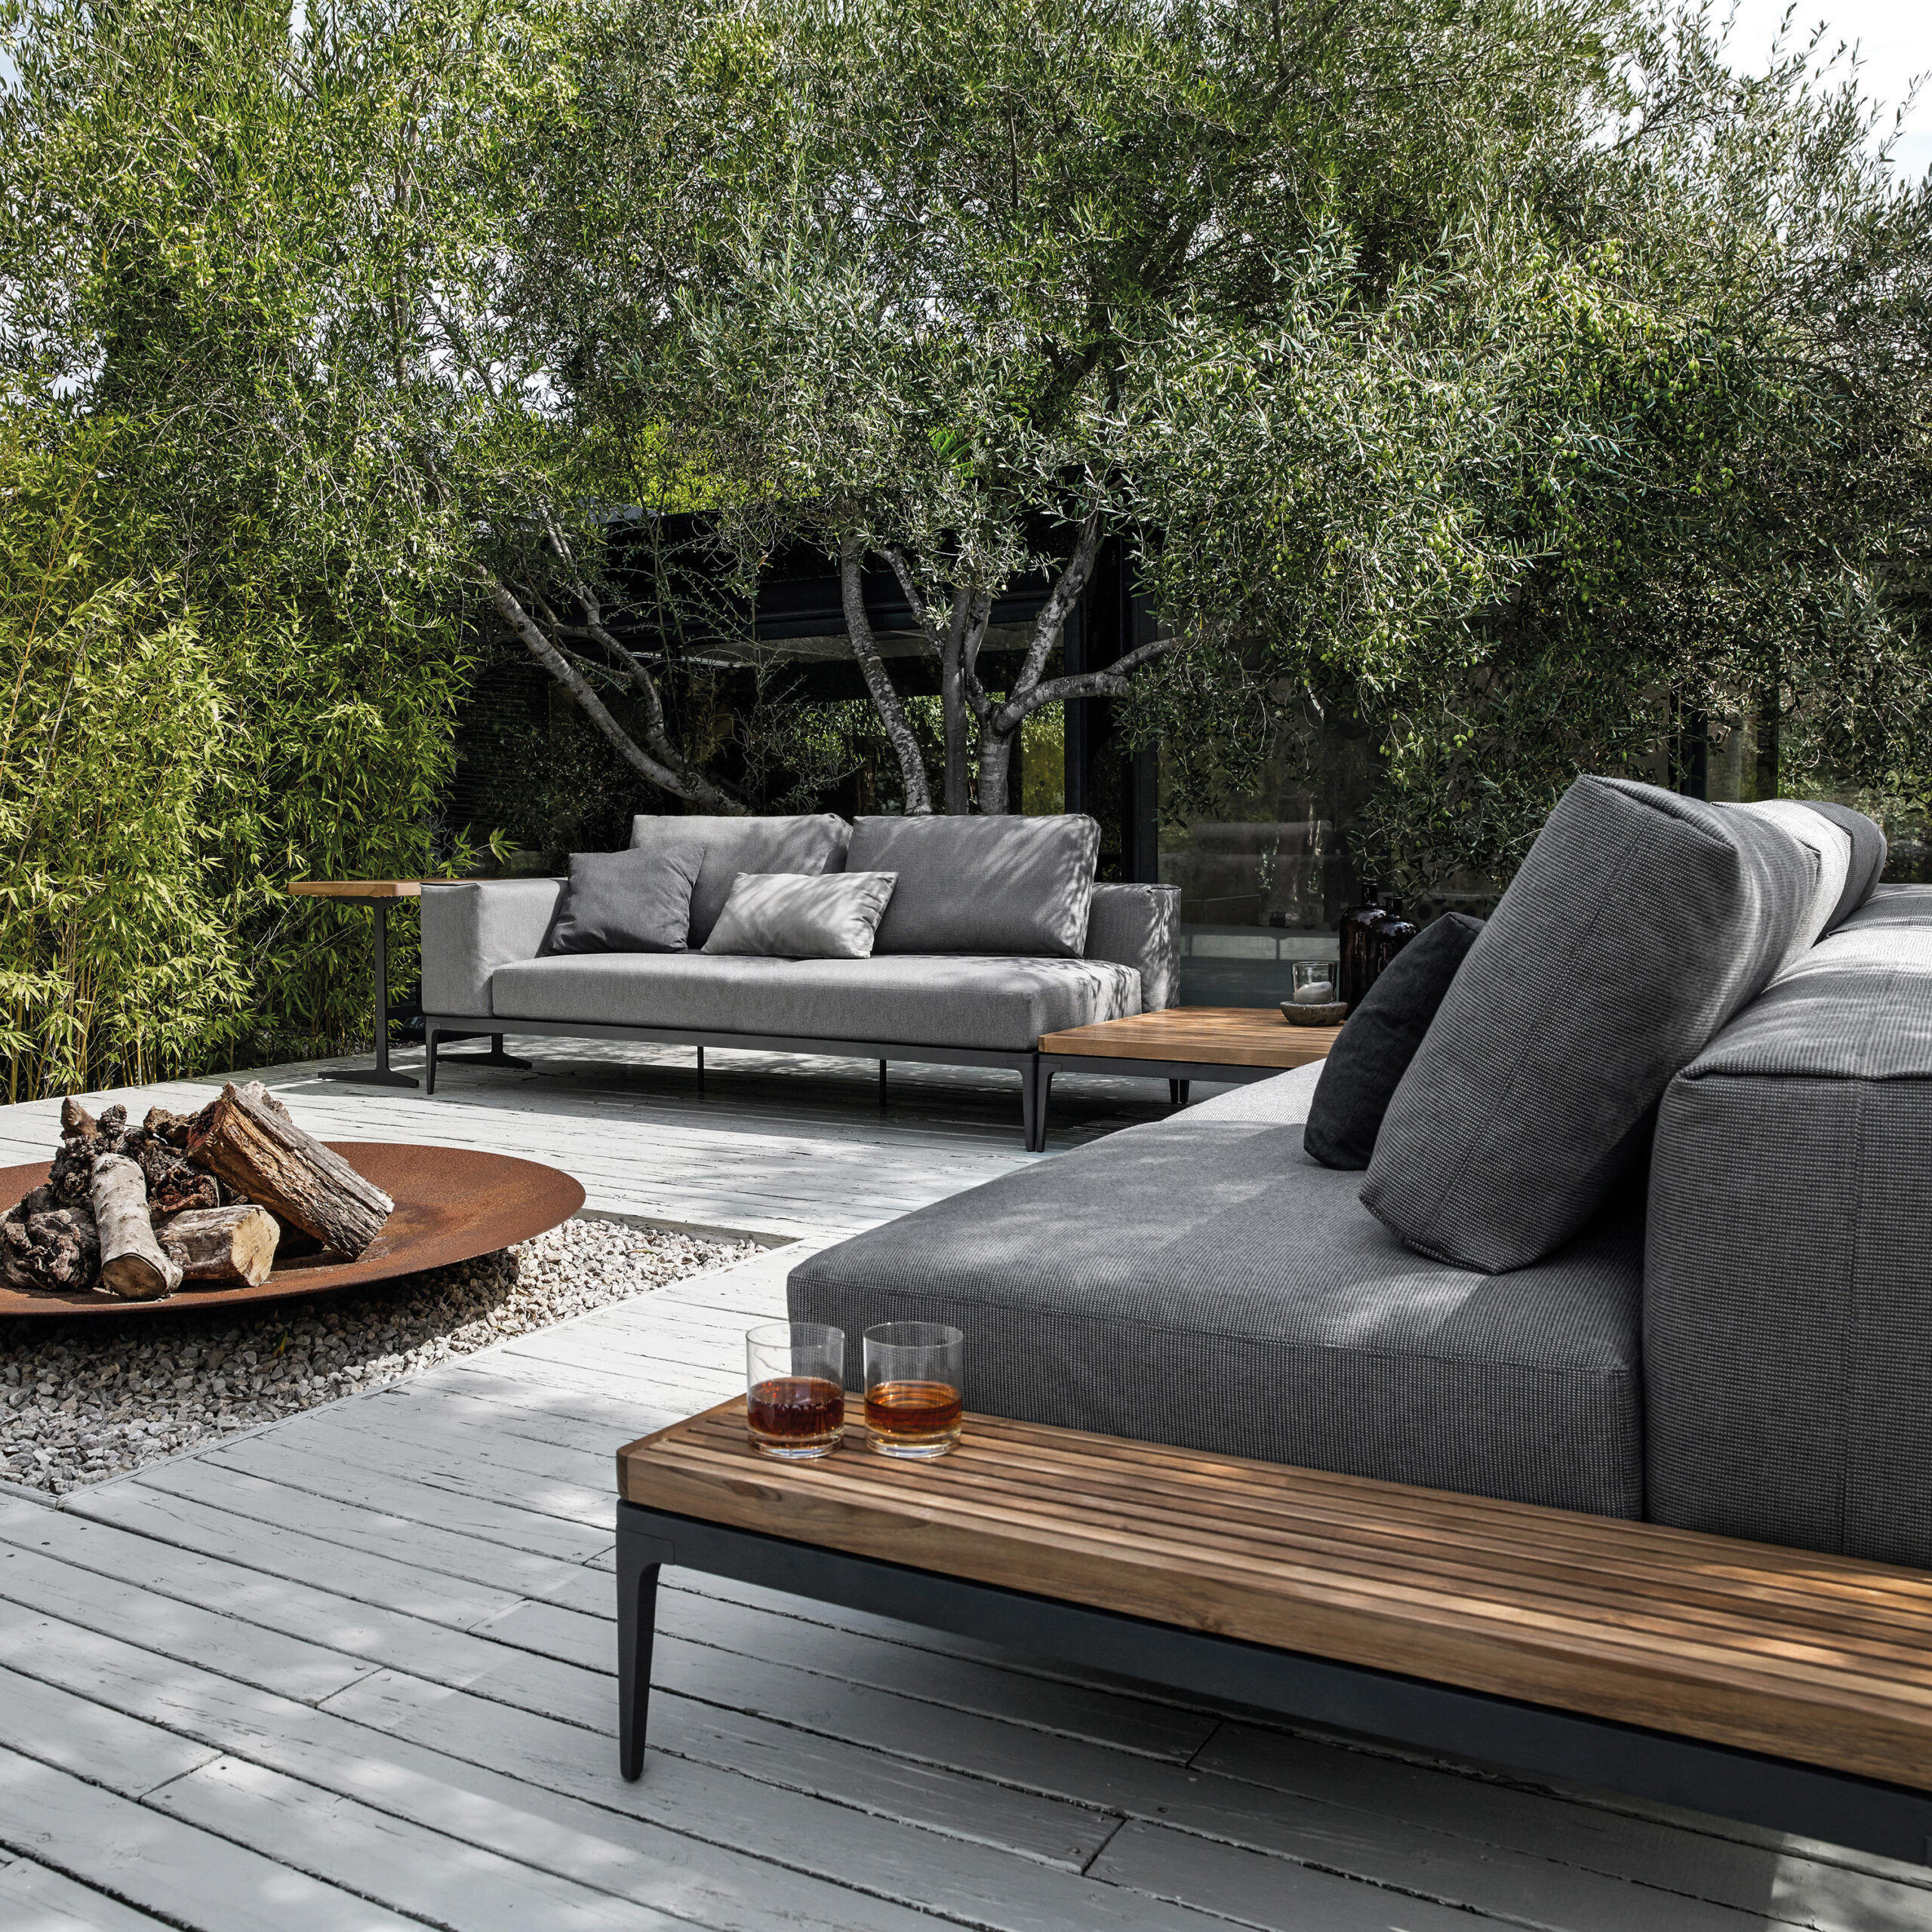 Full Size of Couch Terrasse Terrassen Grid Centre Unit Sofas From Gloster Furniture Wohnzimmer Couch Terrasse